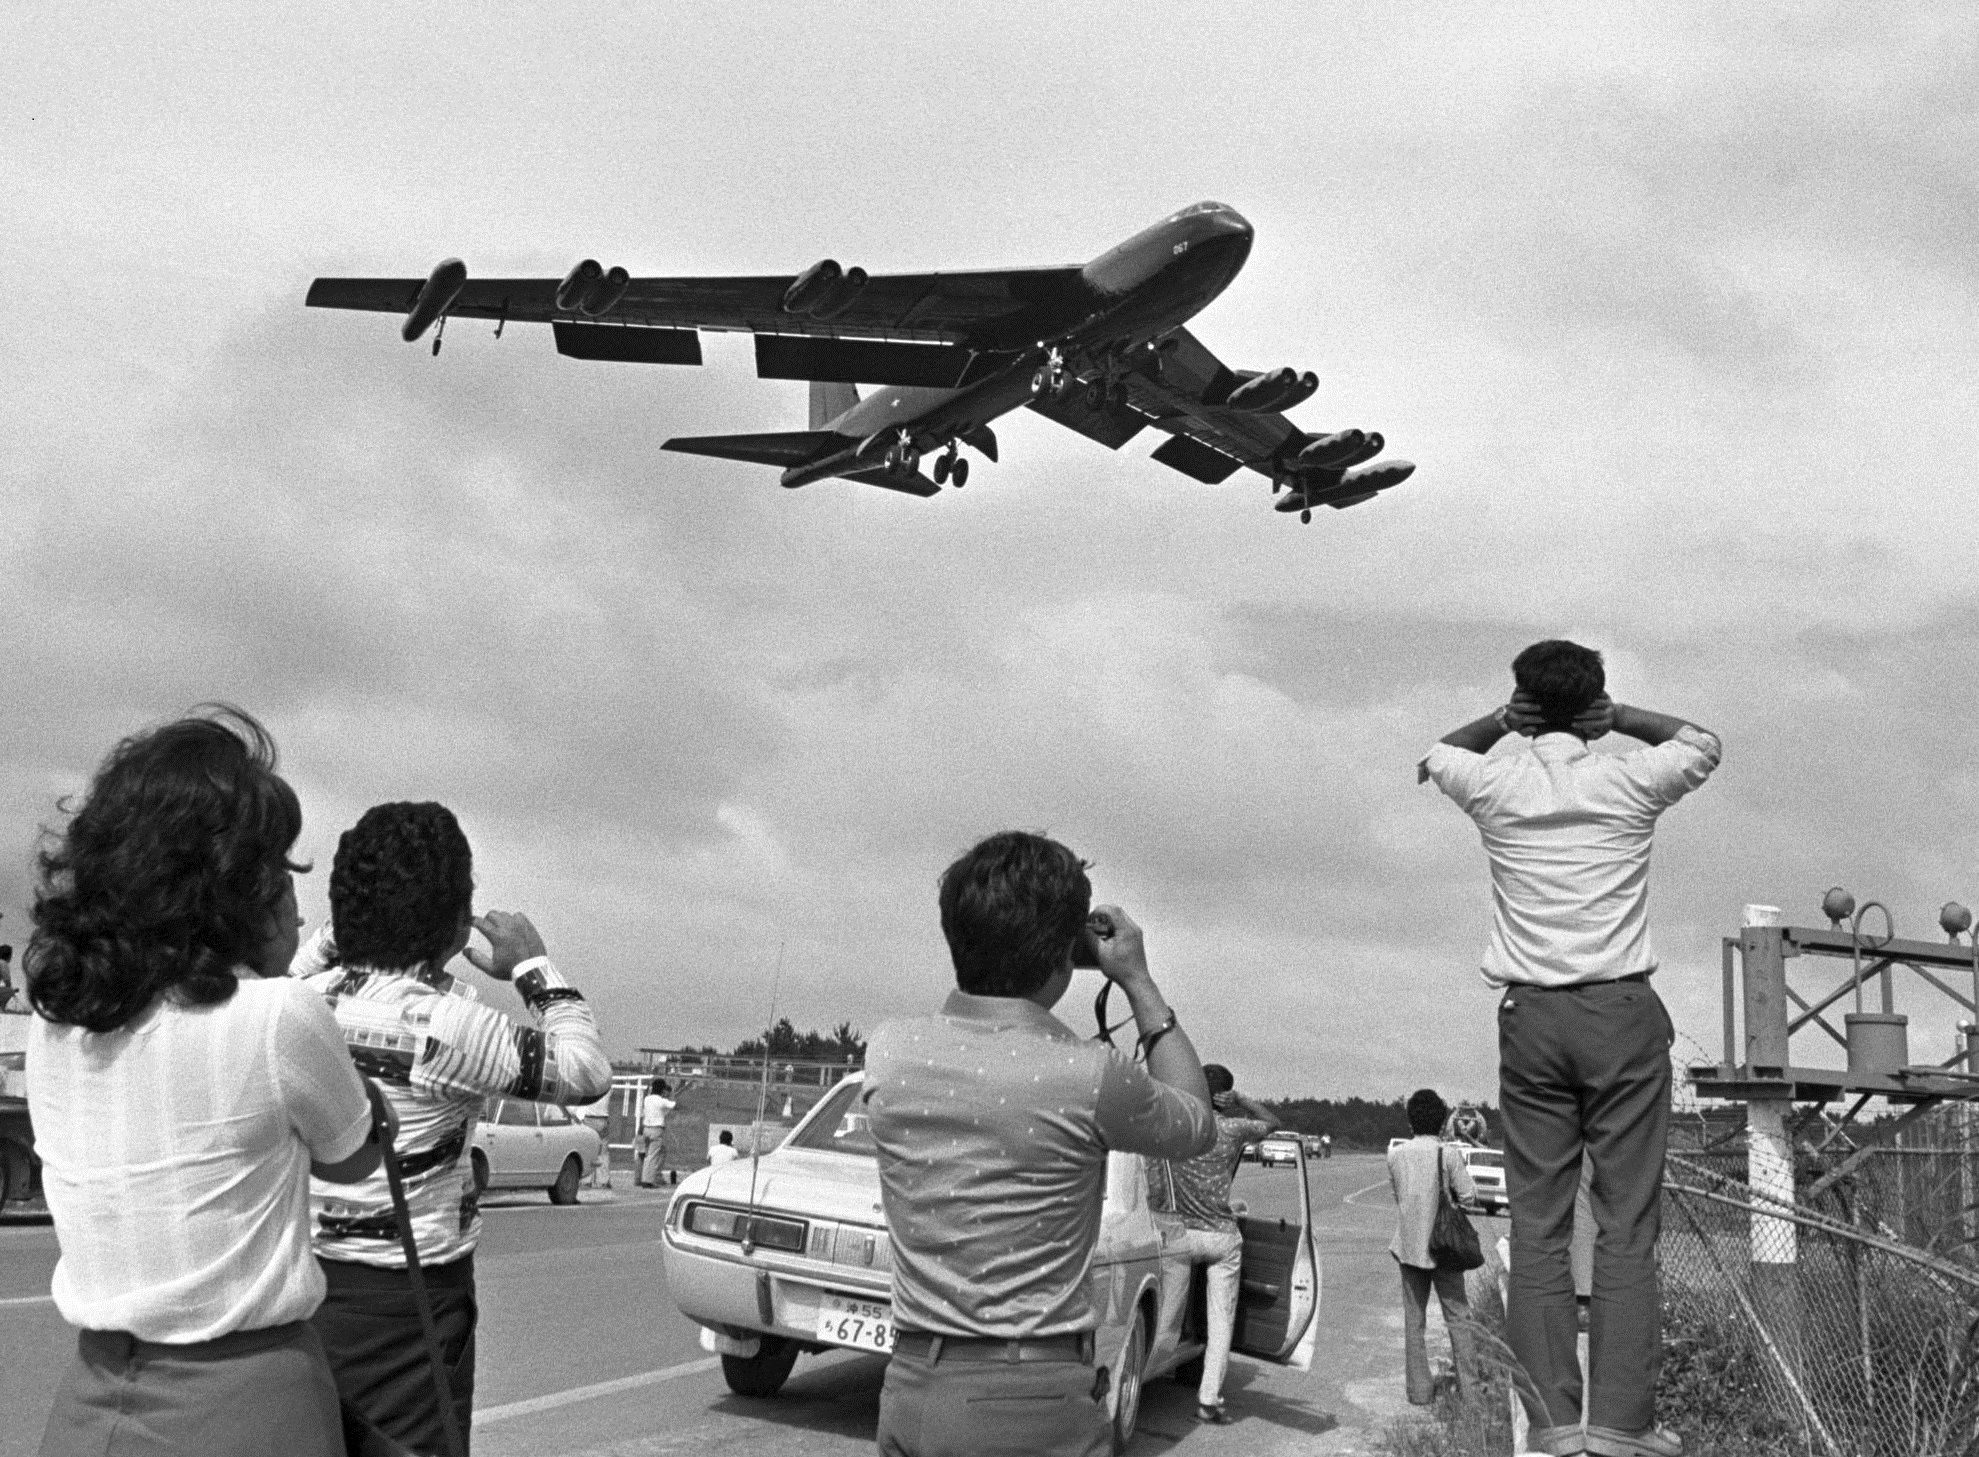 A B-52 bomber flies over the U.S. military's Kadena Air Base in Okinawa Prefecture in May 1976. | KYODO